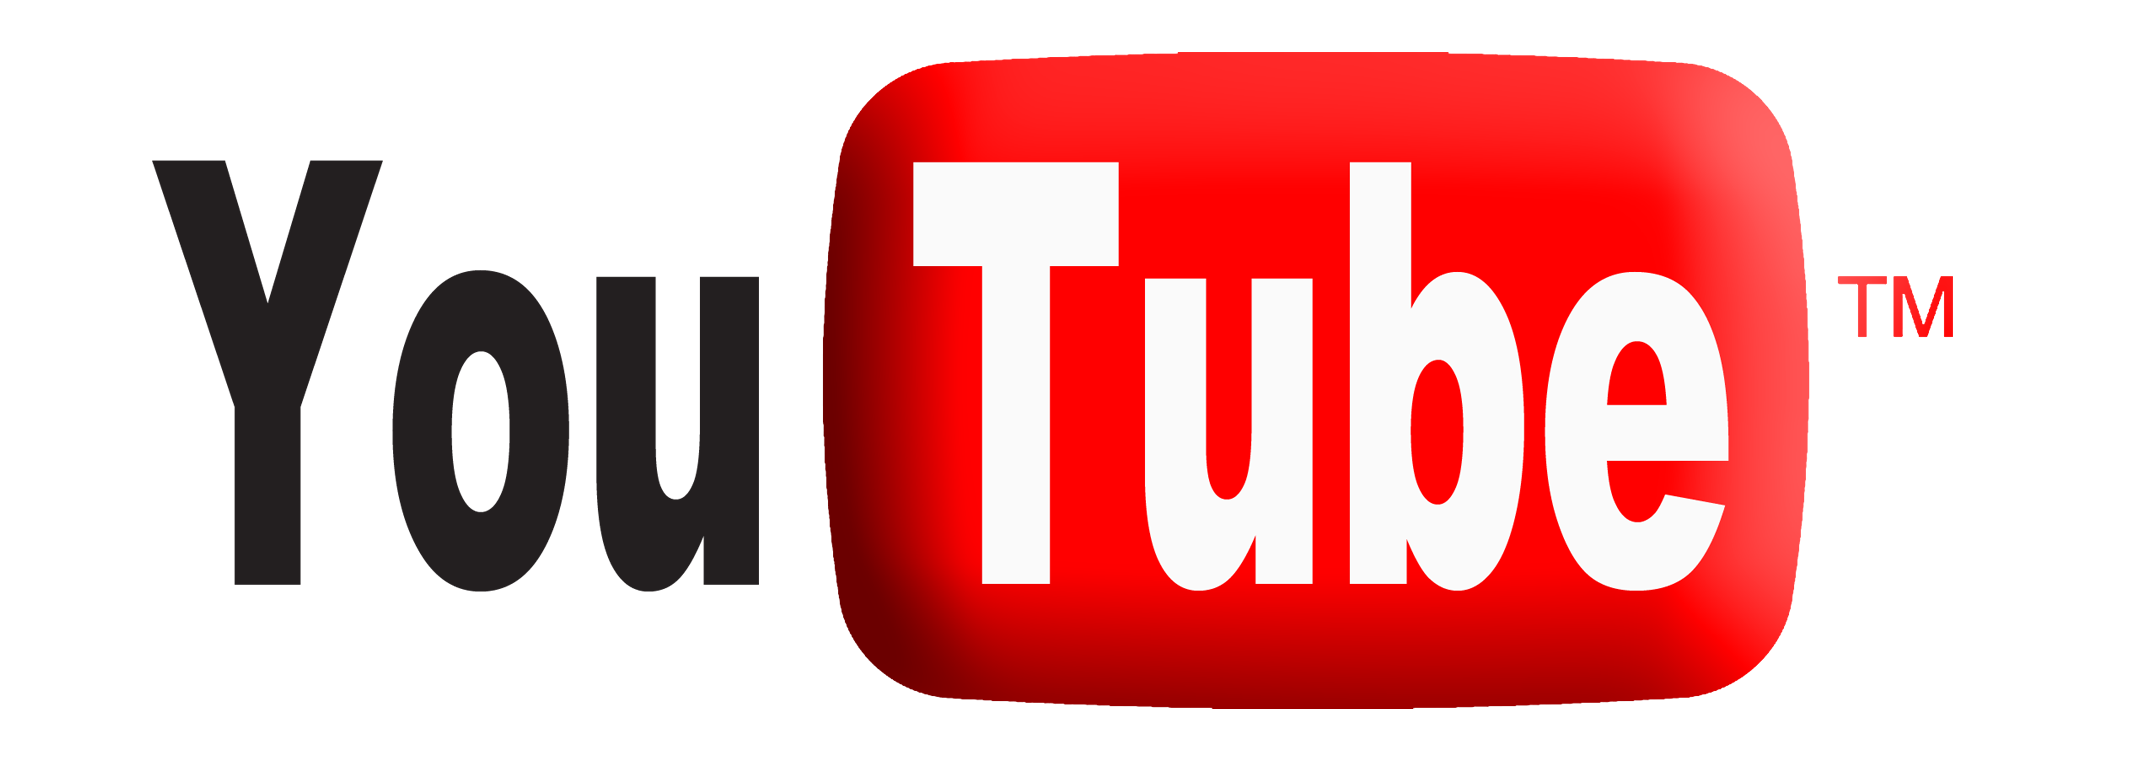 youtube logo png transparent background download #2064